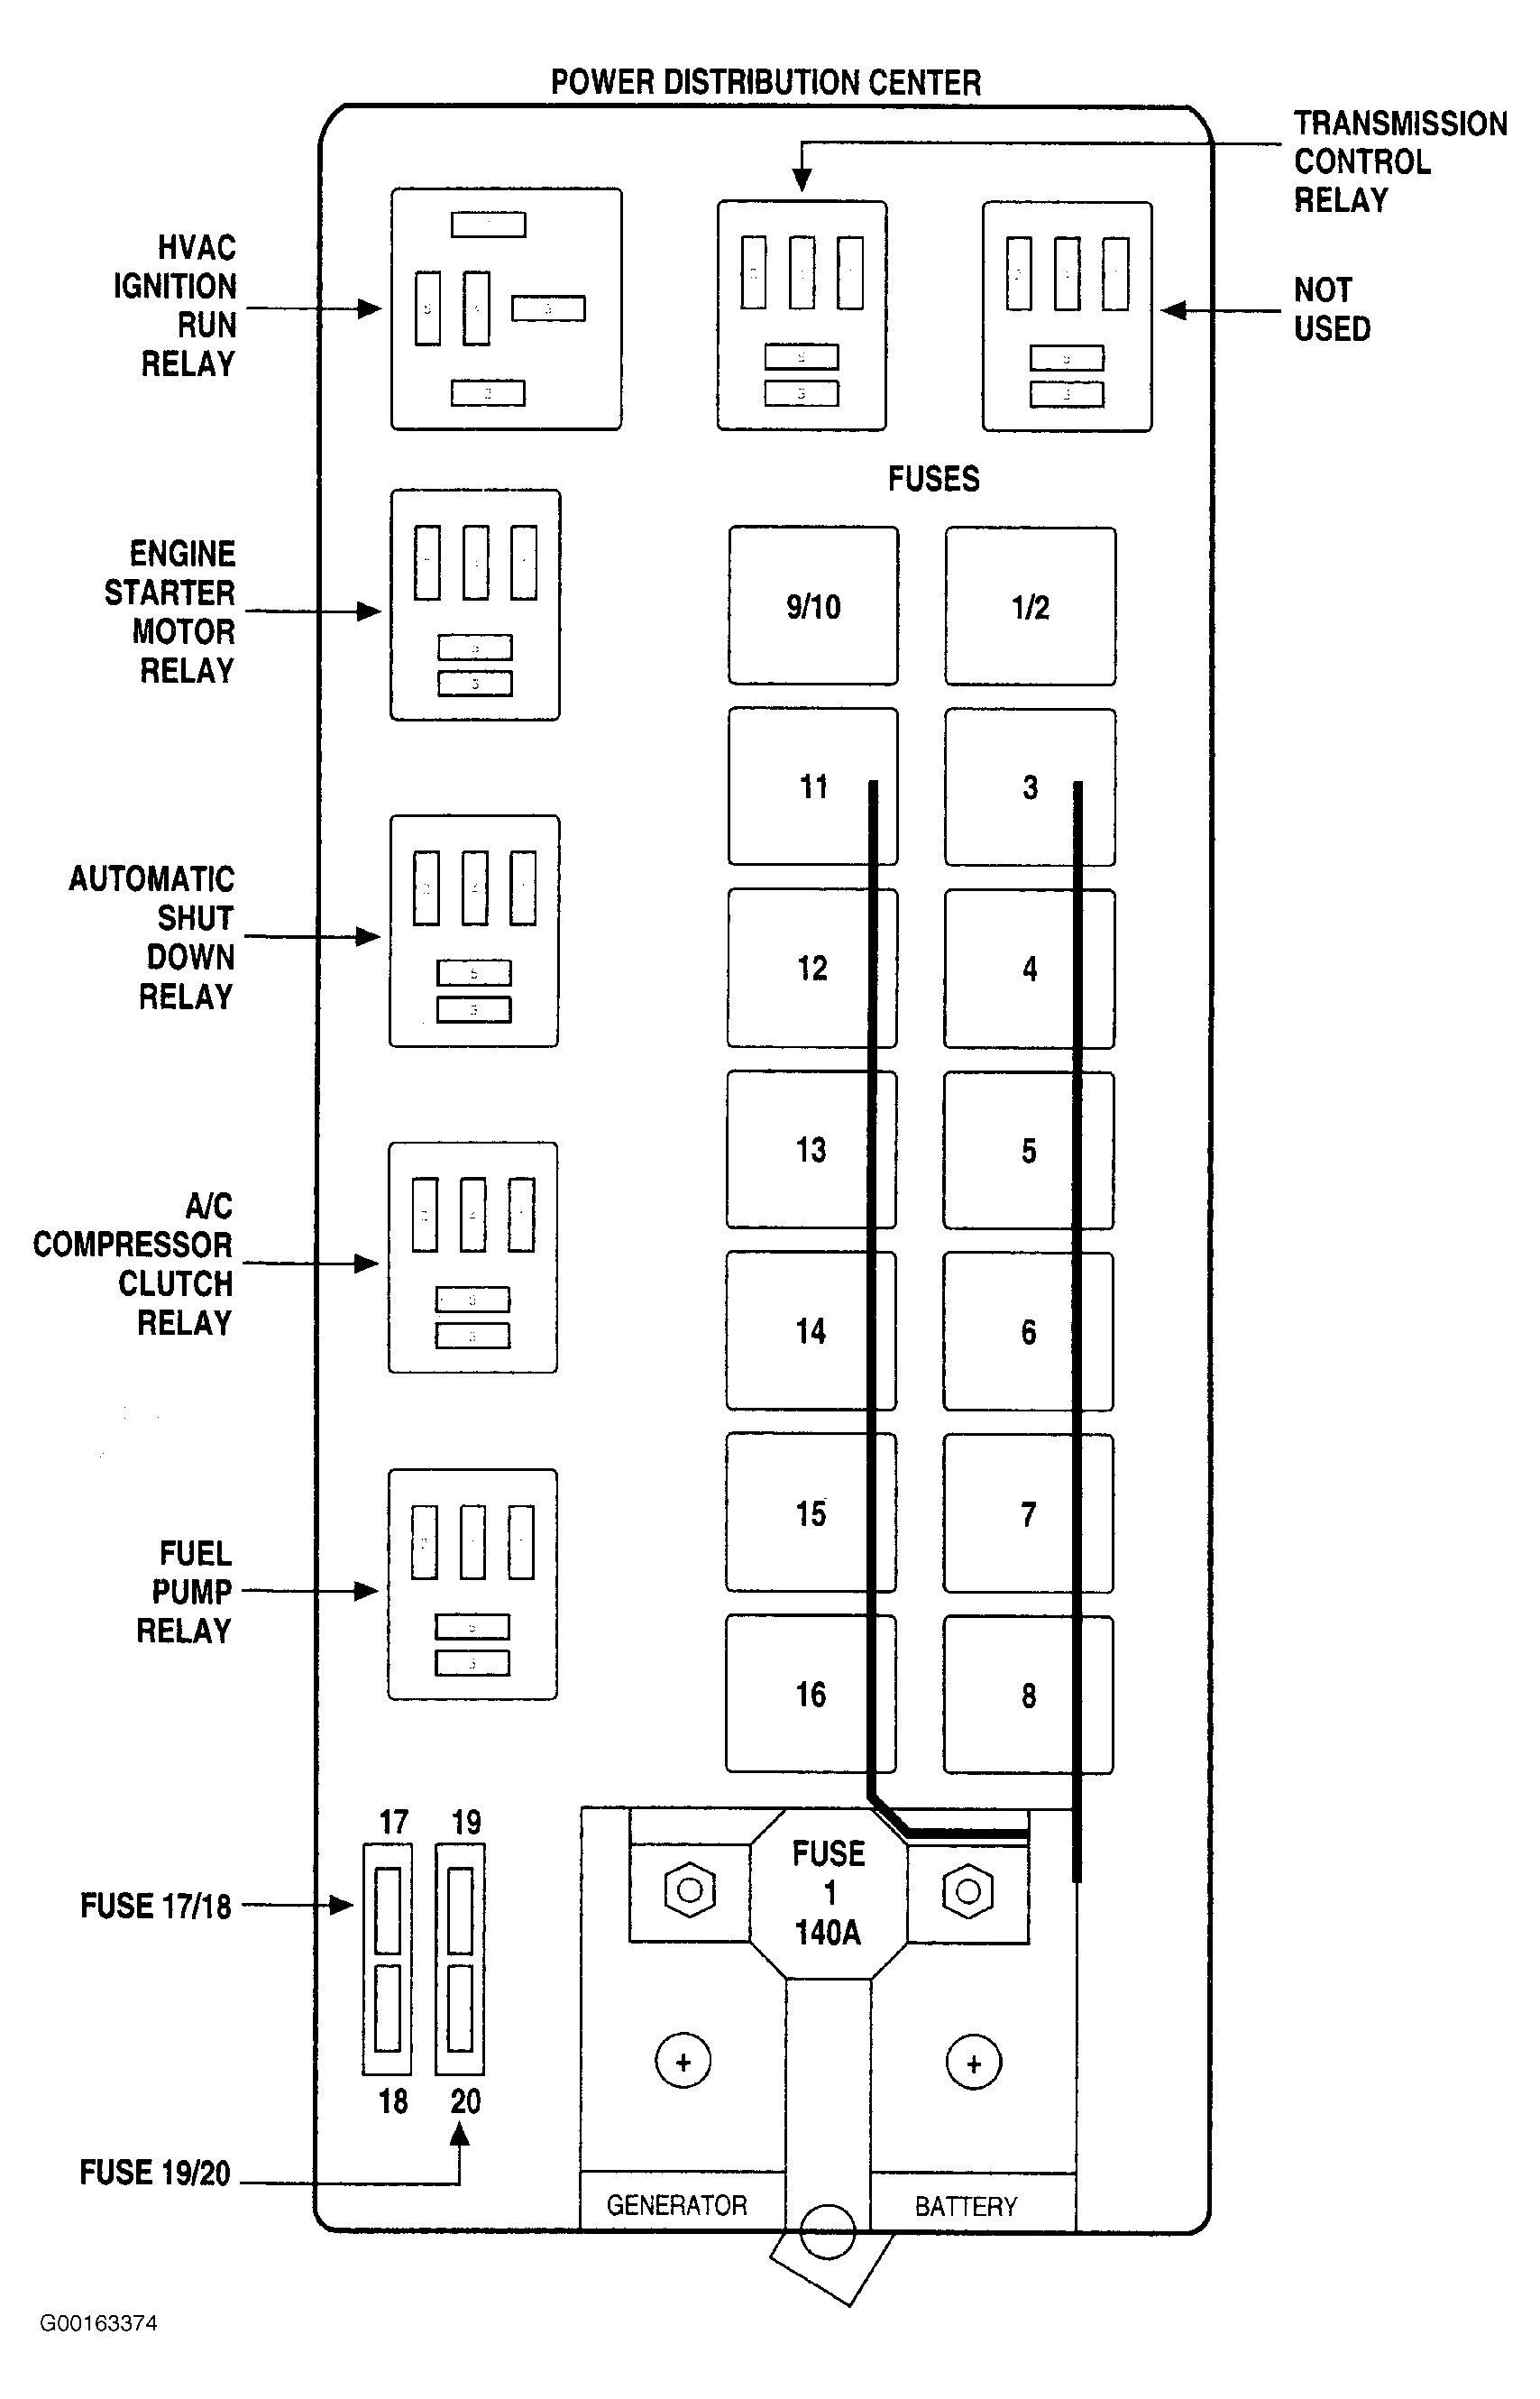 Awesome Wiring Diagram For Neon Lights Diagrams Digramssample Diagramimages Wiringdiagramsample Wiringdiagram Diagram 2004 Dodge Ram 1500 Dodge Ram 1500